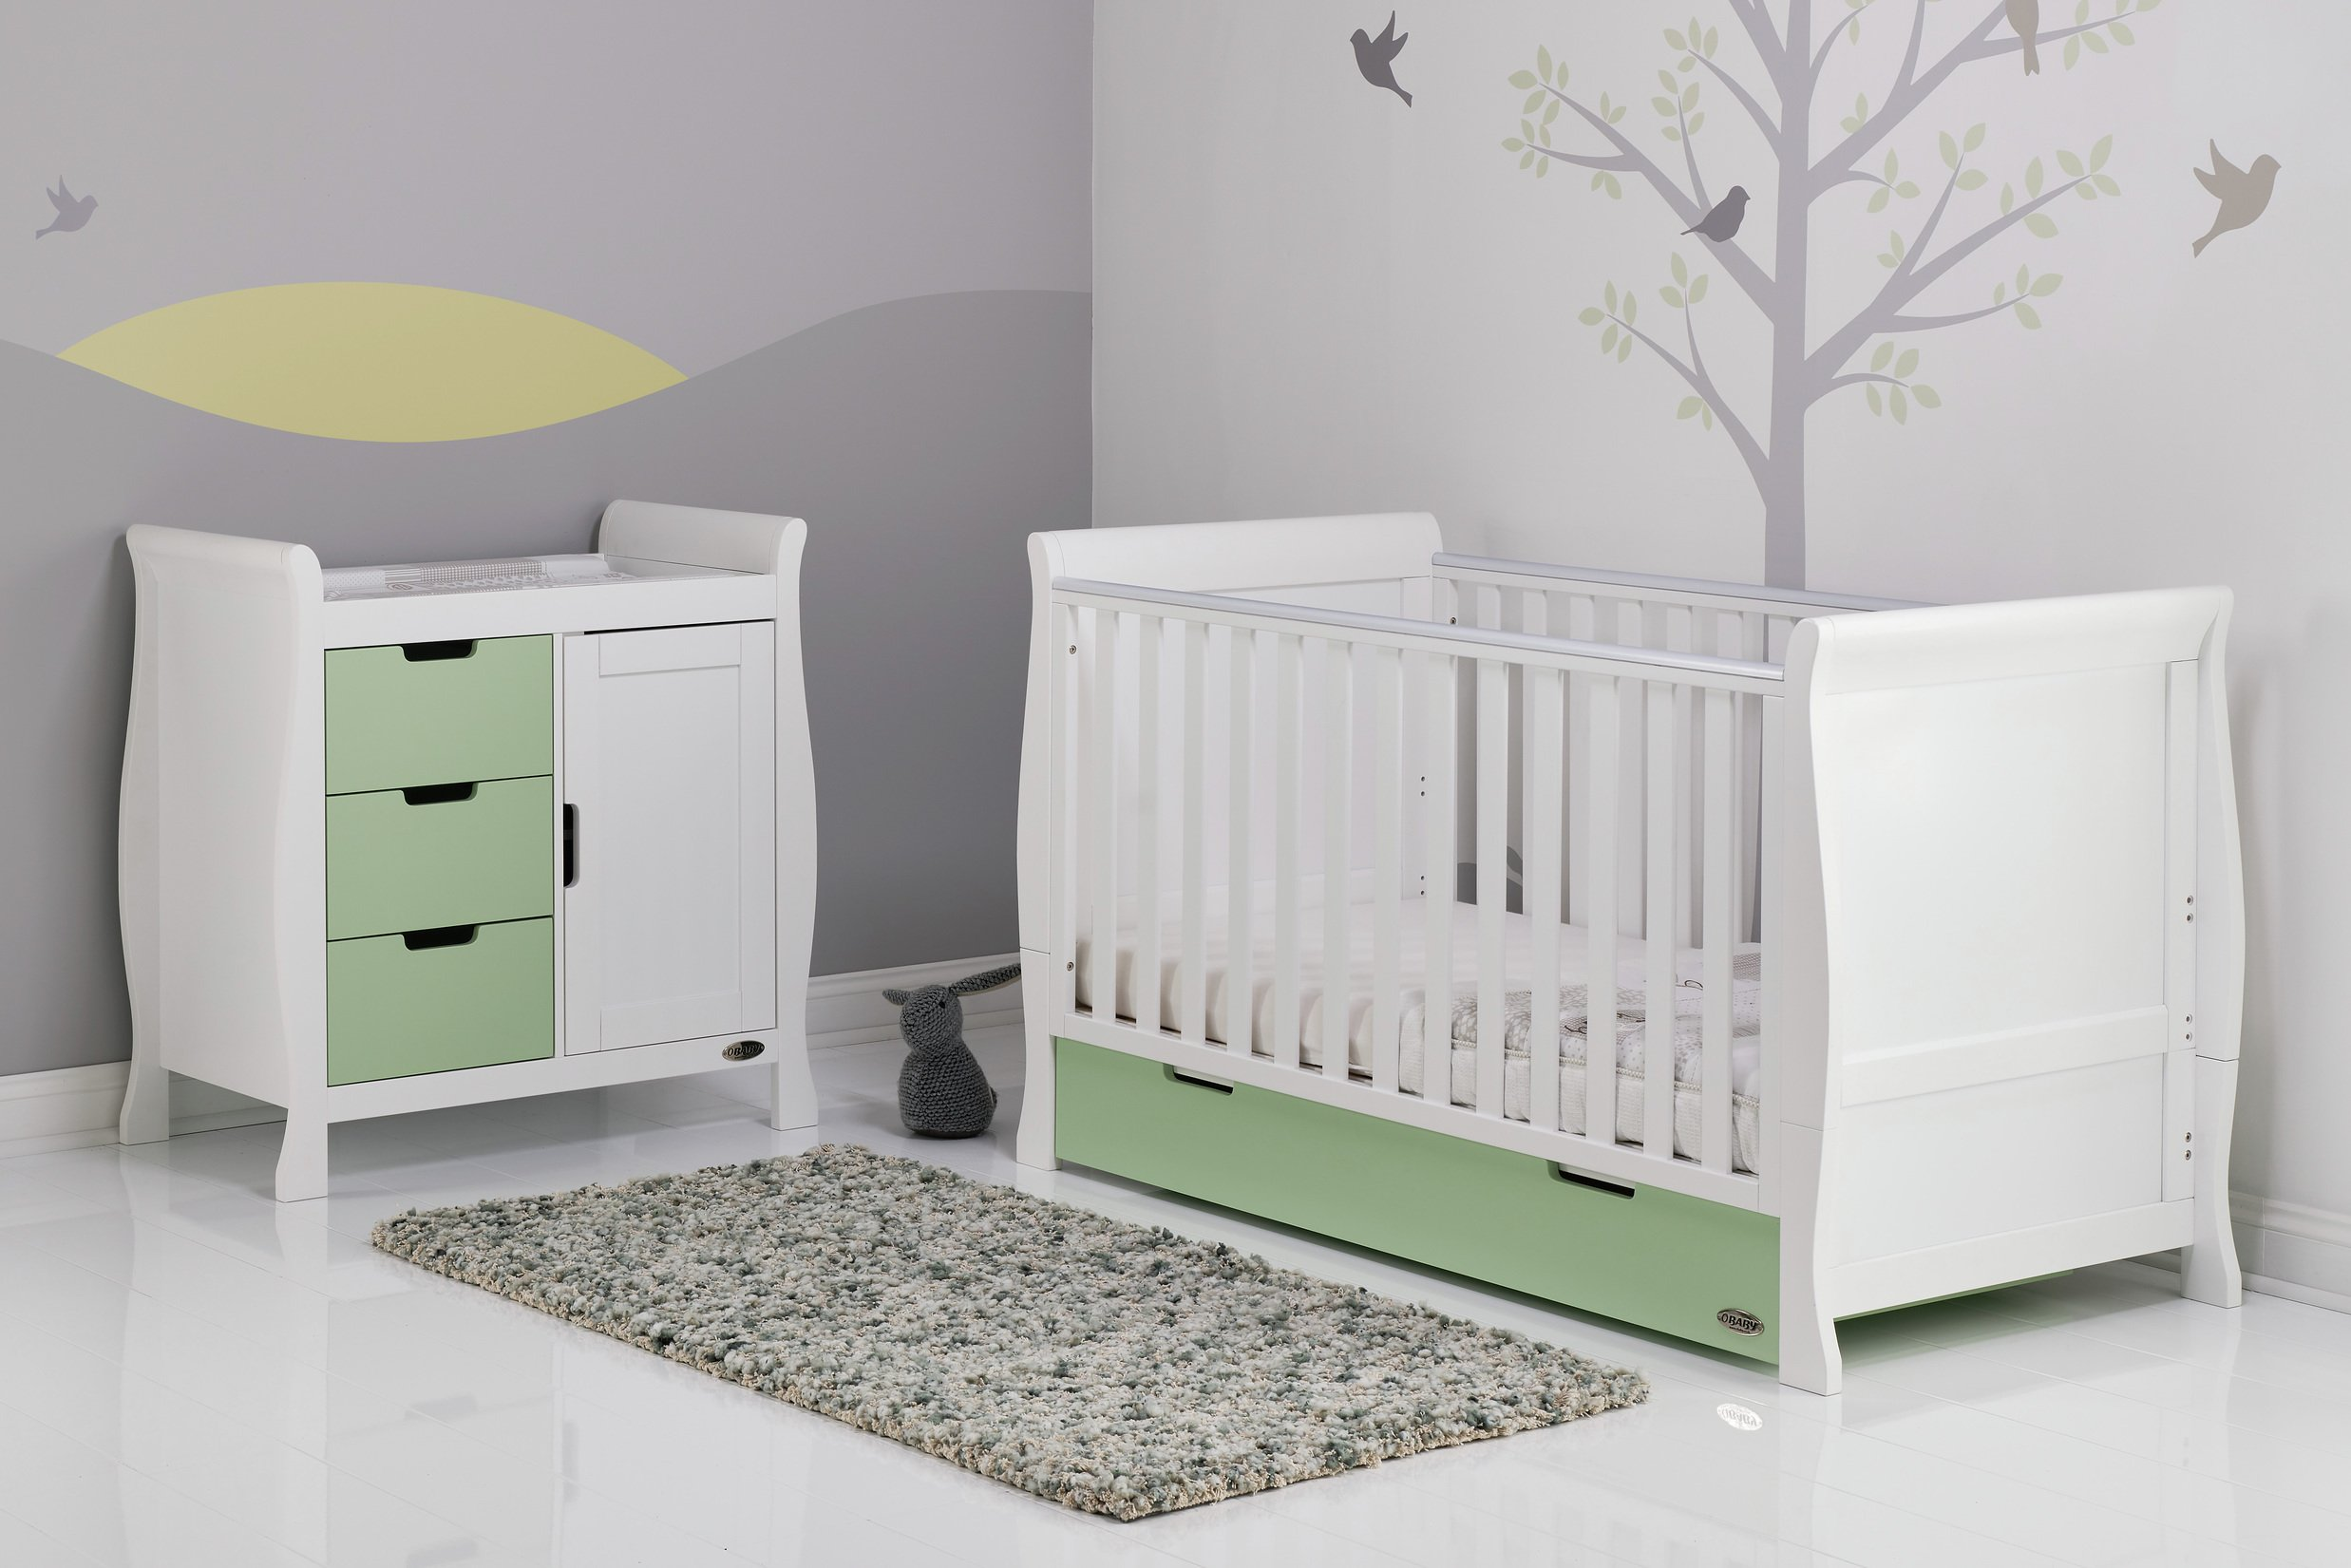 Obaby Stamford 2 Piece Room Set - White with Pistachio